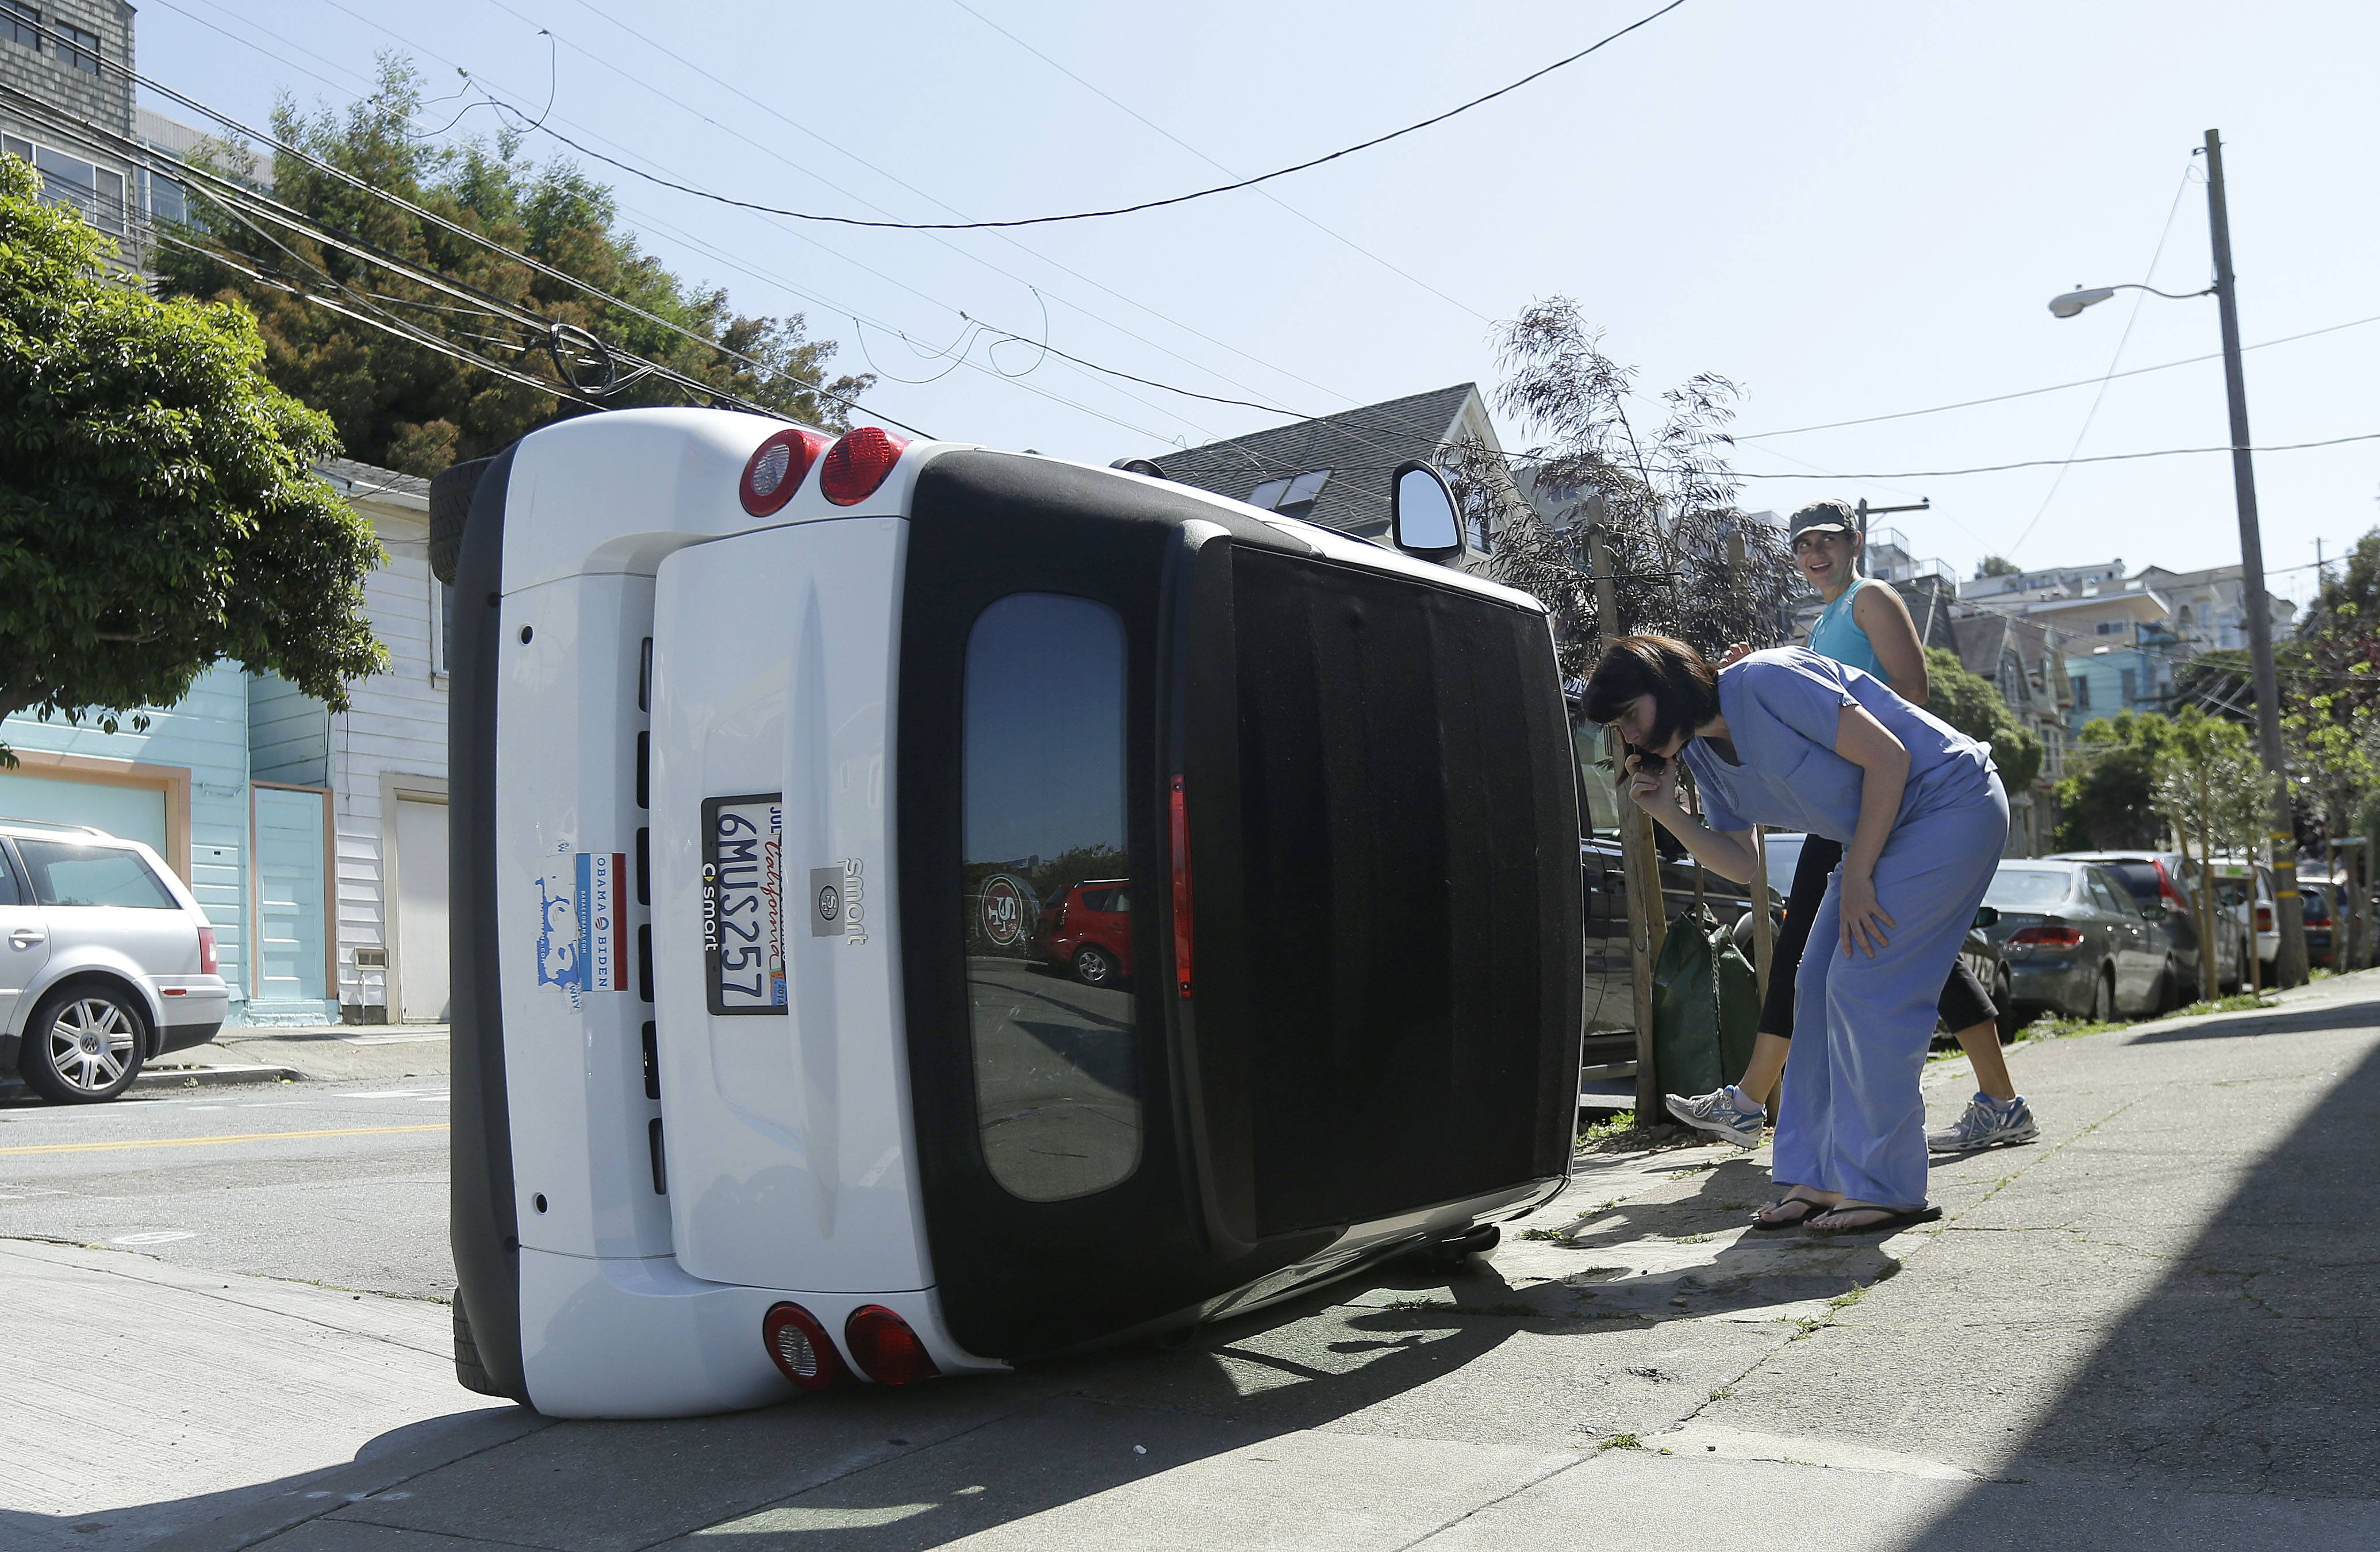 Police in San Francisco are investigating why four Smart cars were flipped over during an apparent early morning vandalism spree.